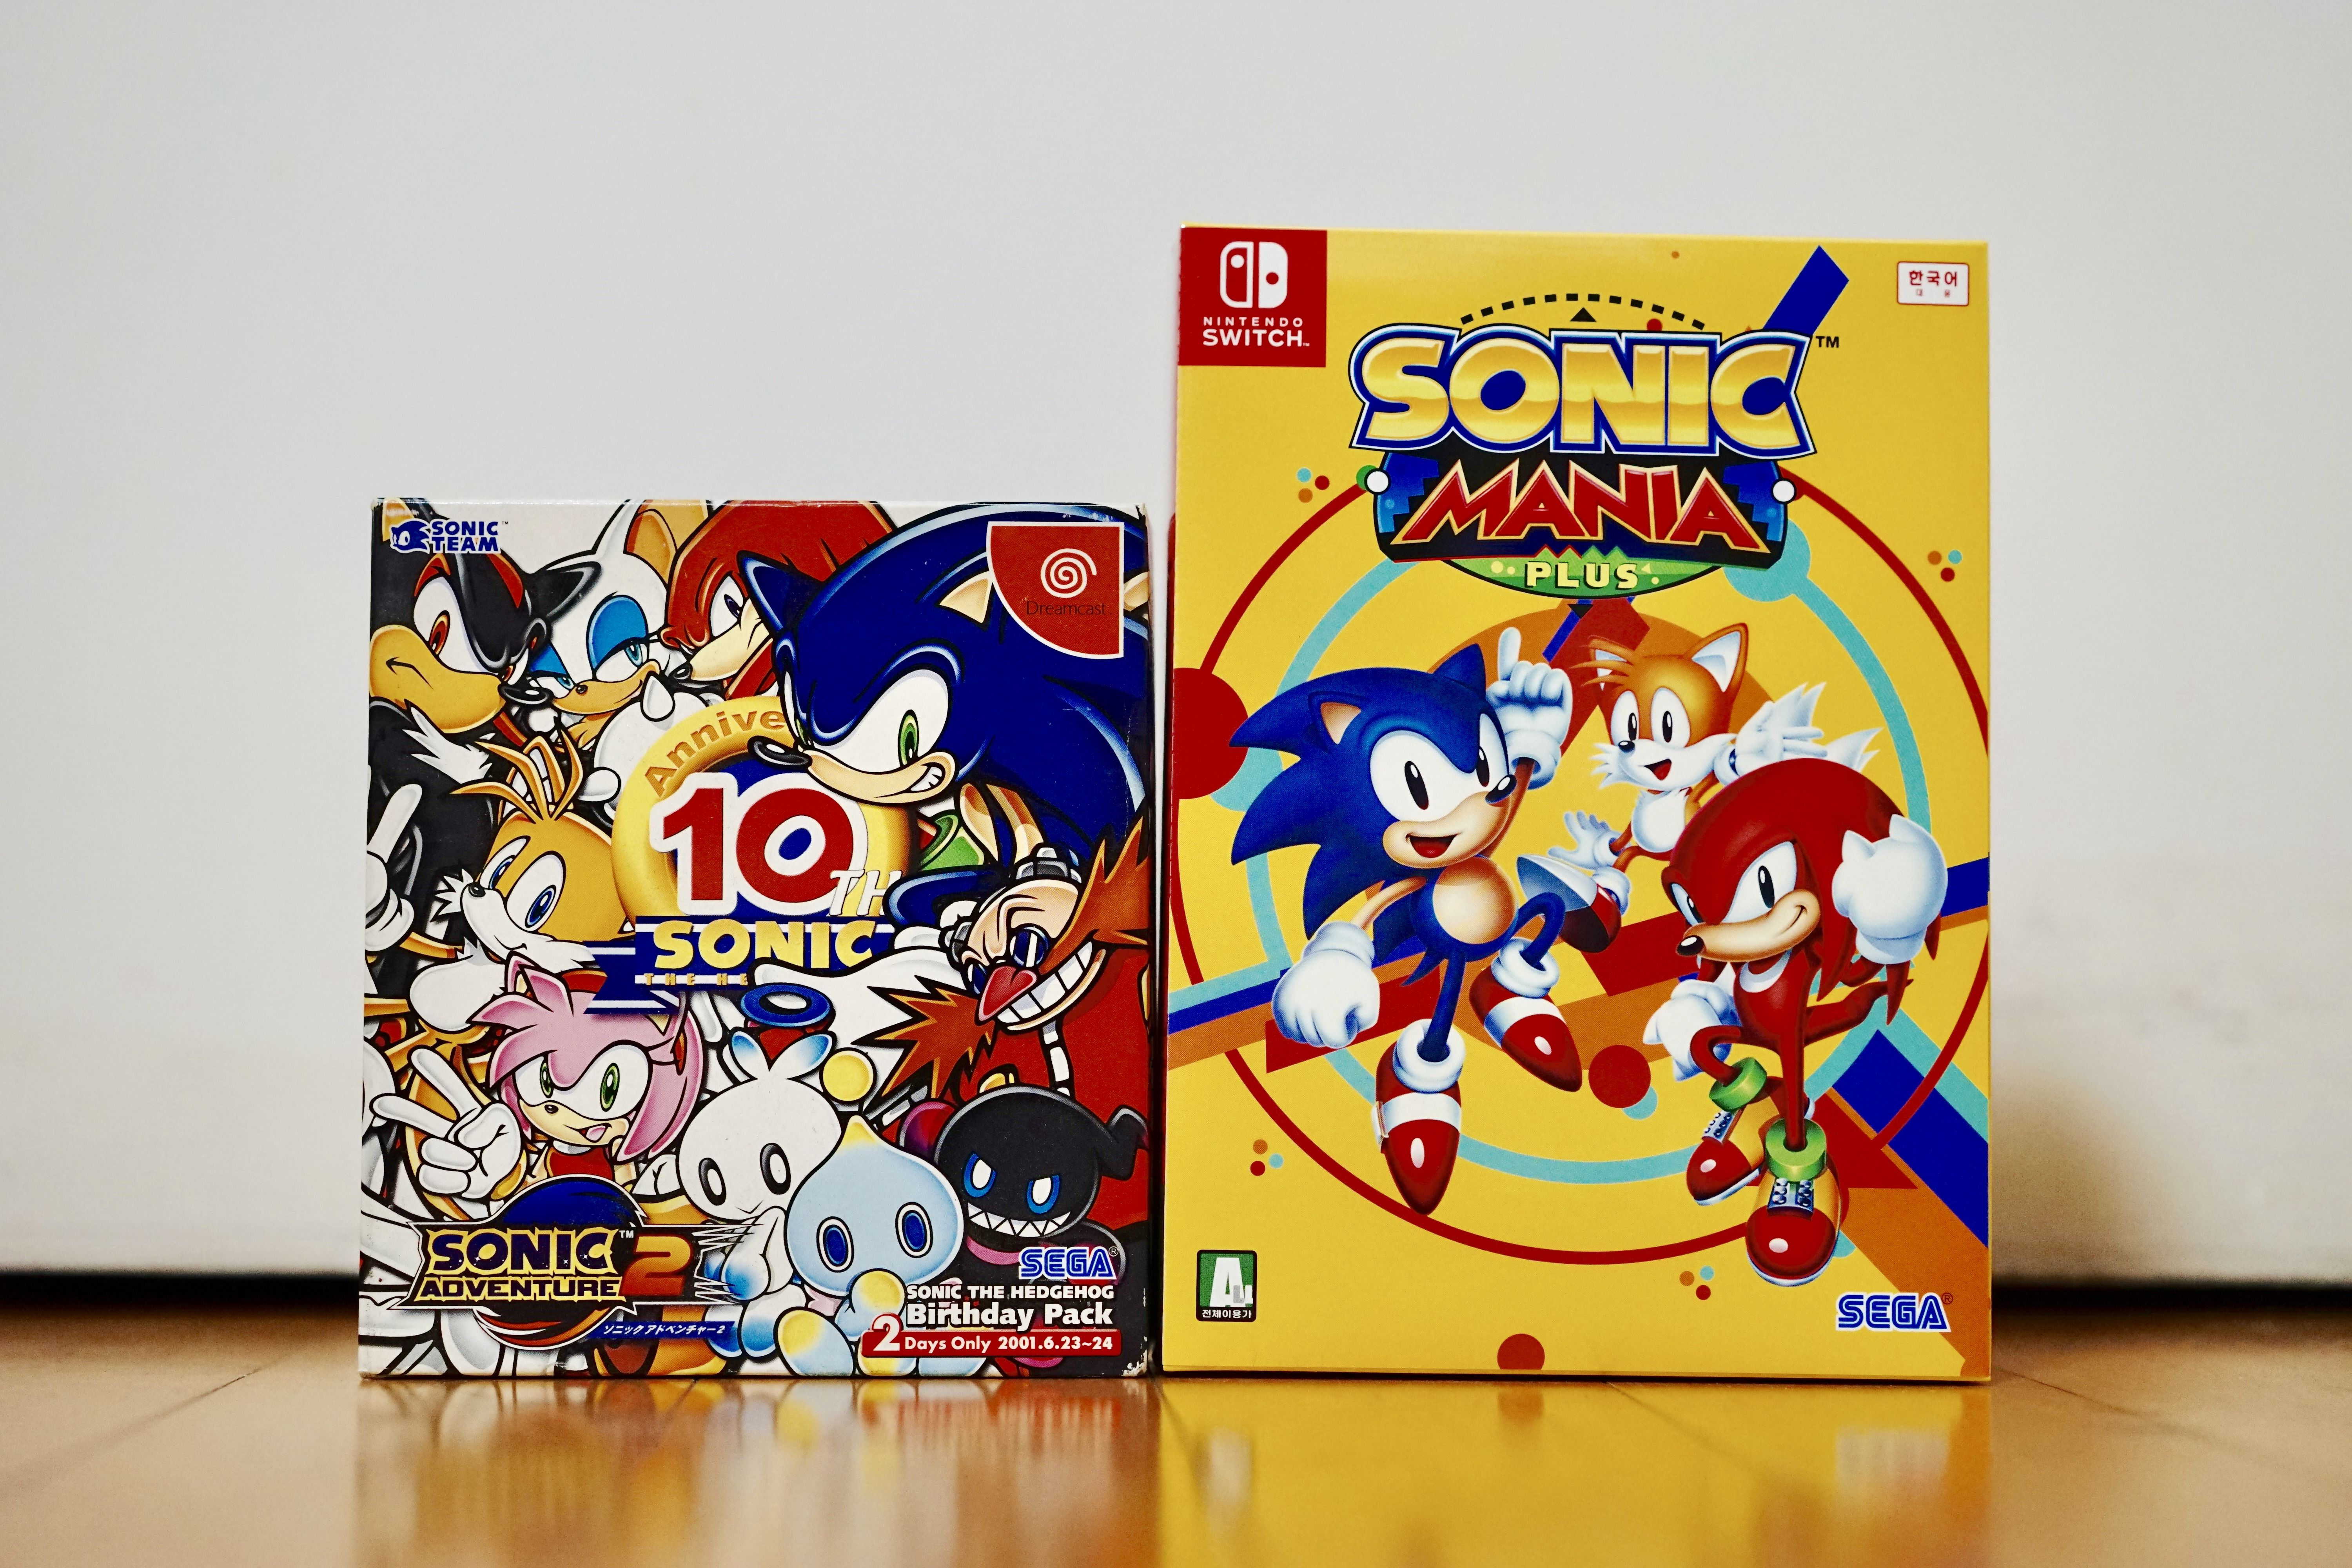 Sonic Mania Plus Limited Edition (NS) and Sonic 10th Birthday Pack